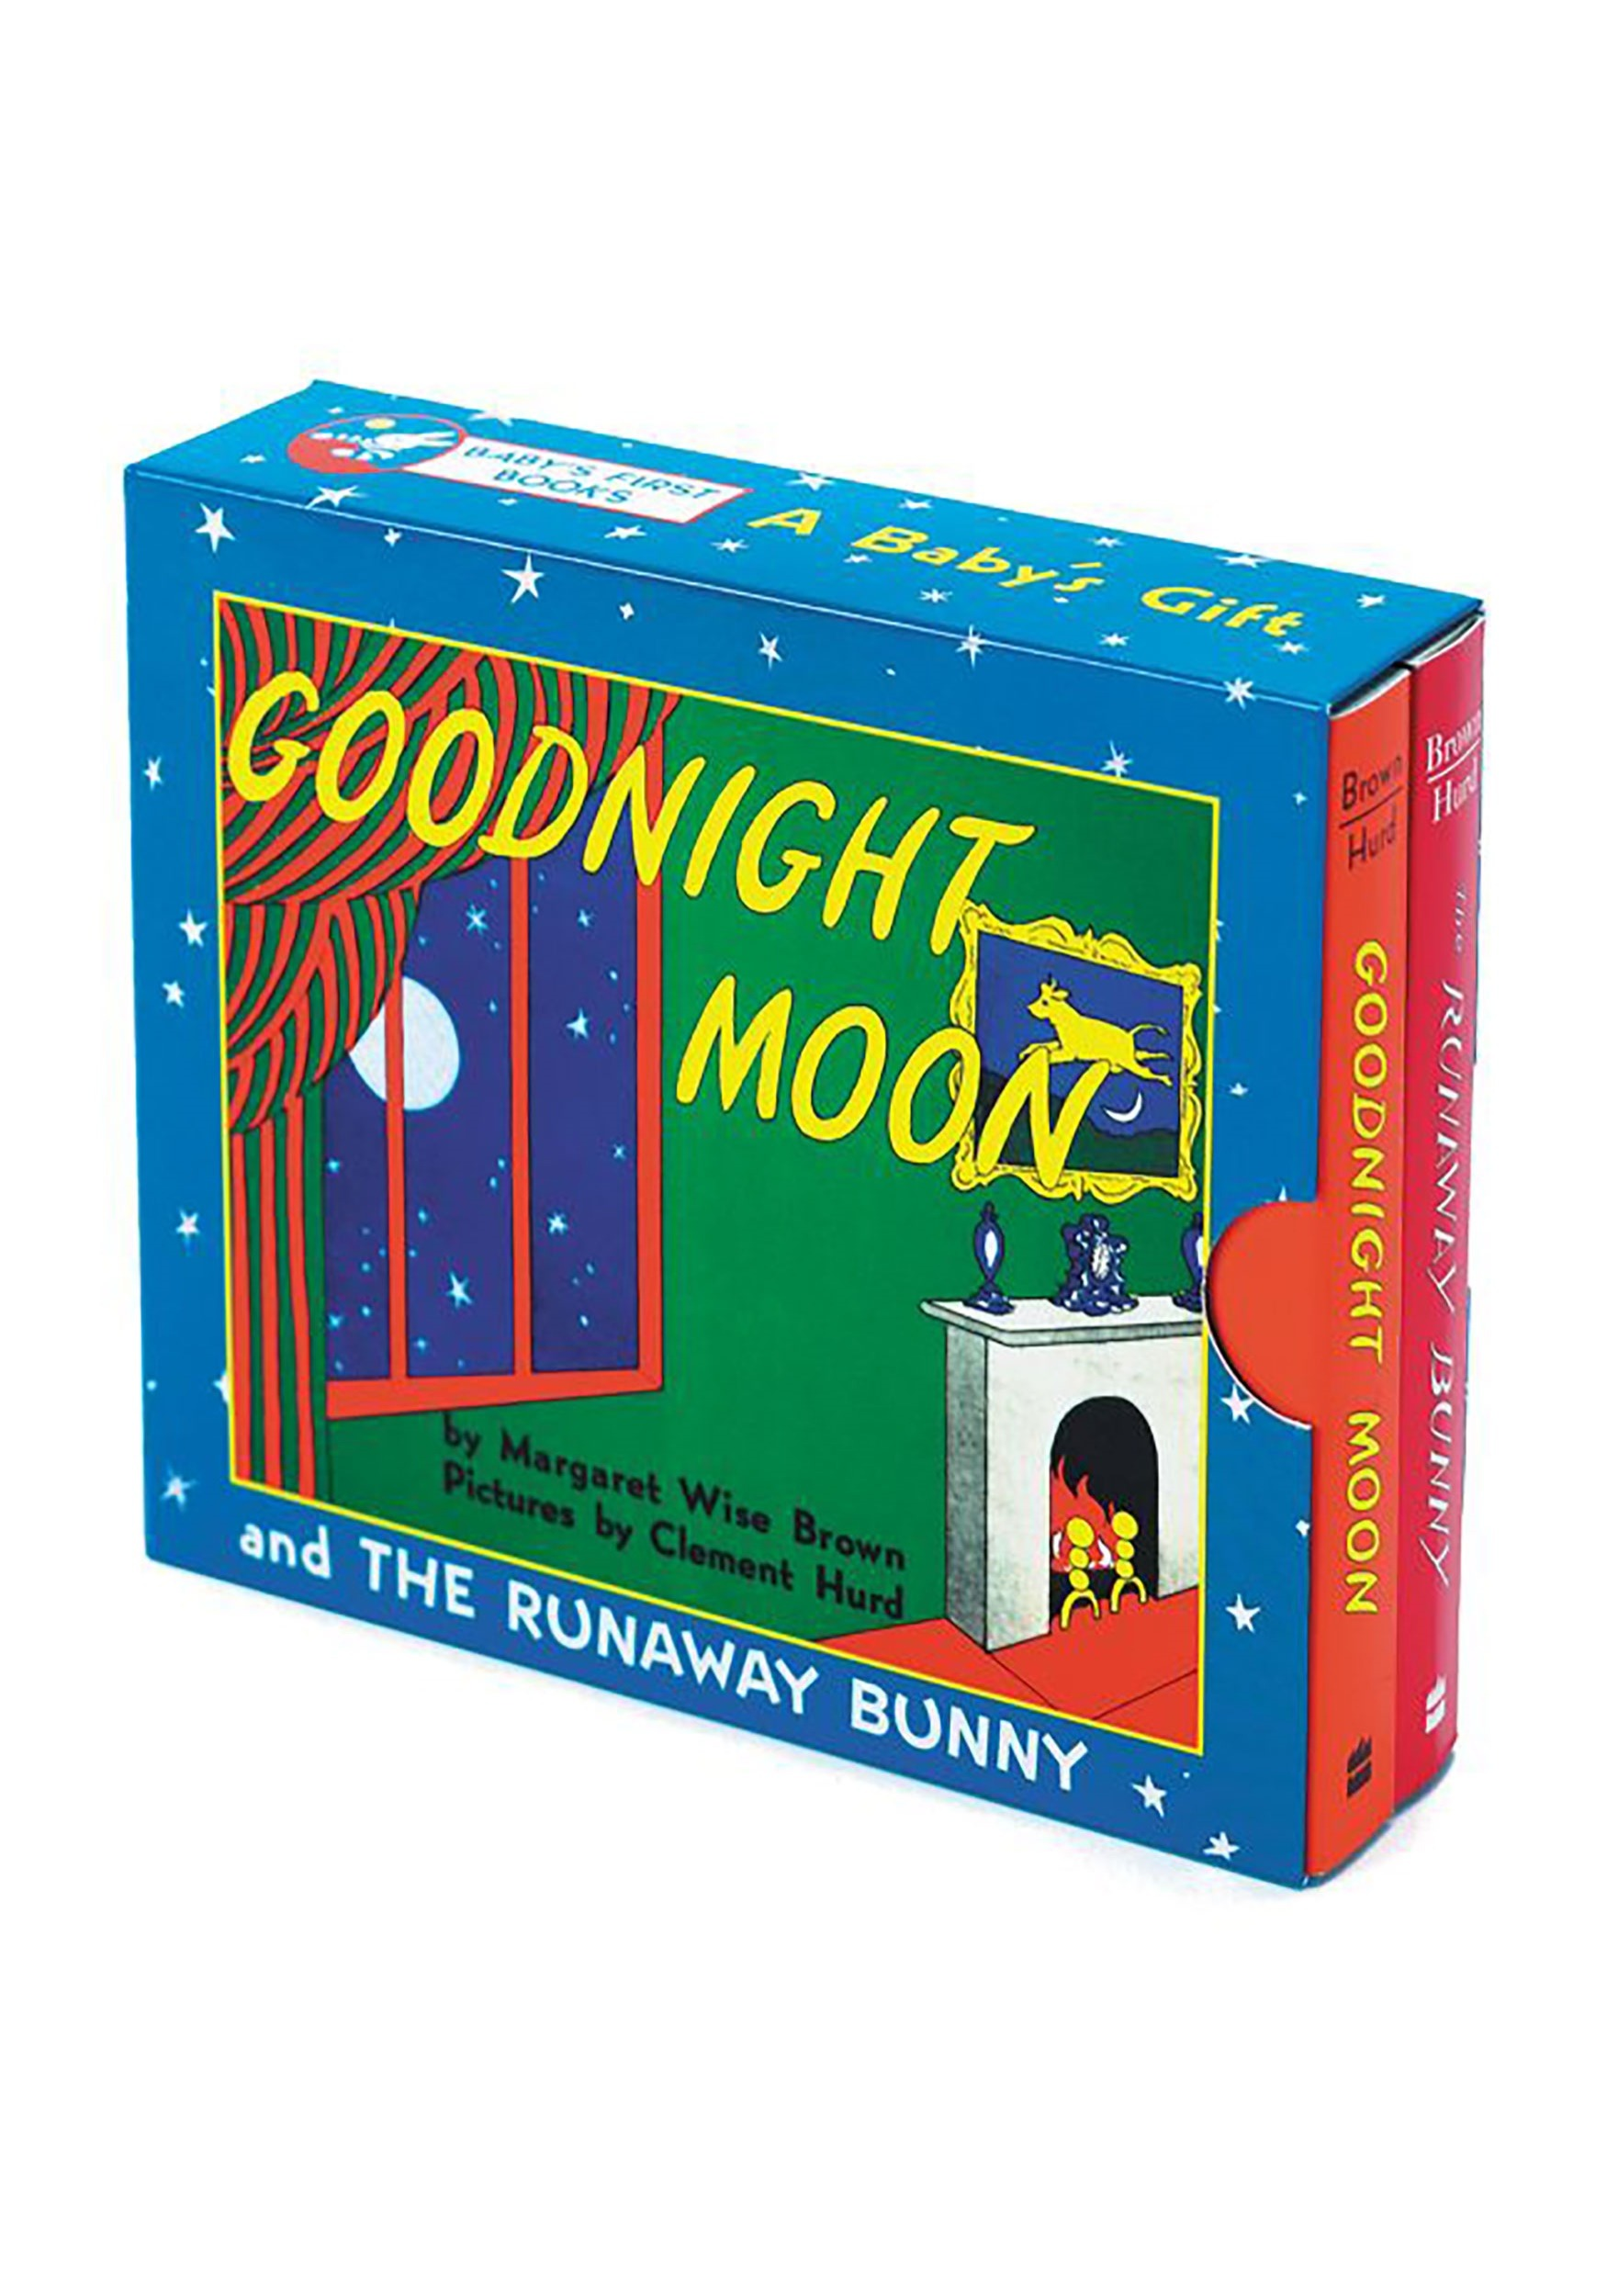 Book Set A Baby's Gift: Goodnight Moon and The Runaway Bunny Board